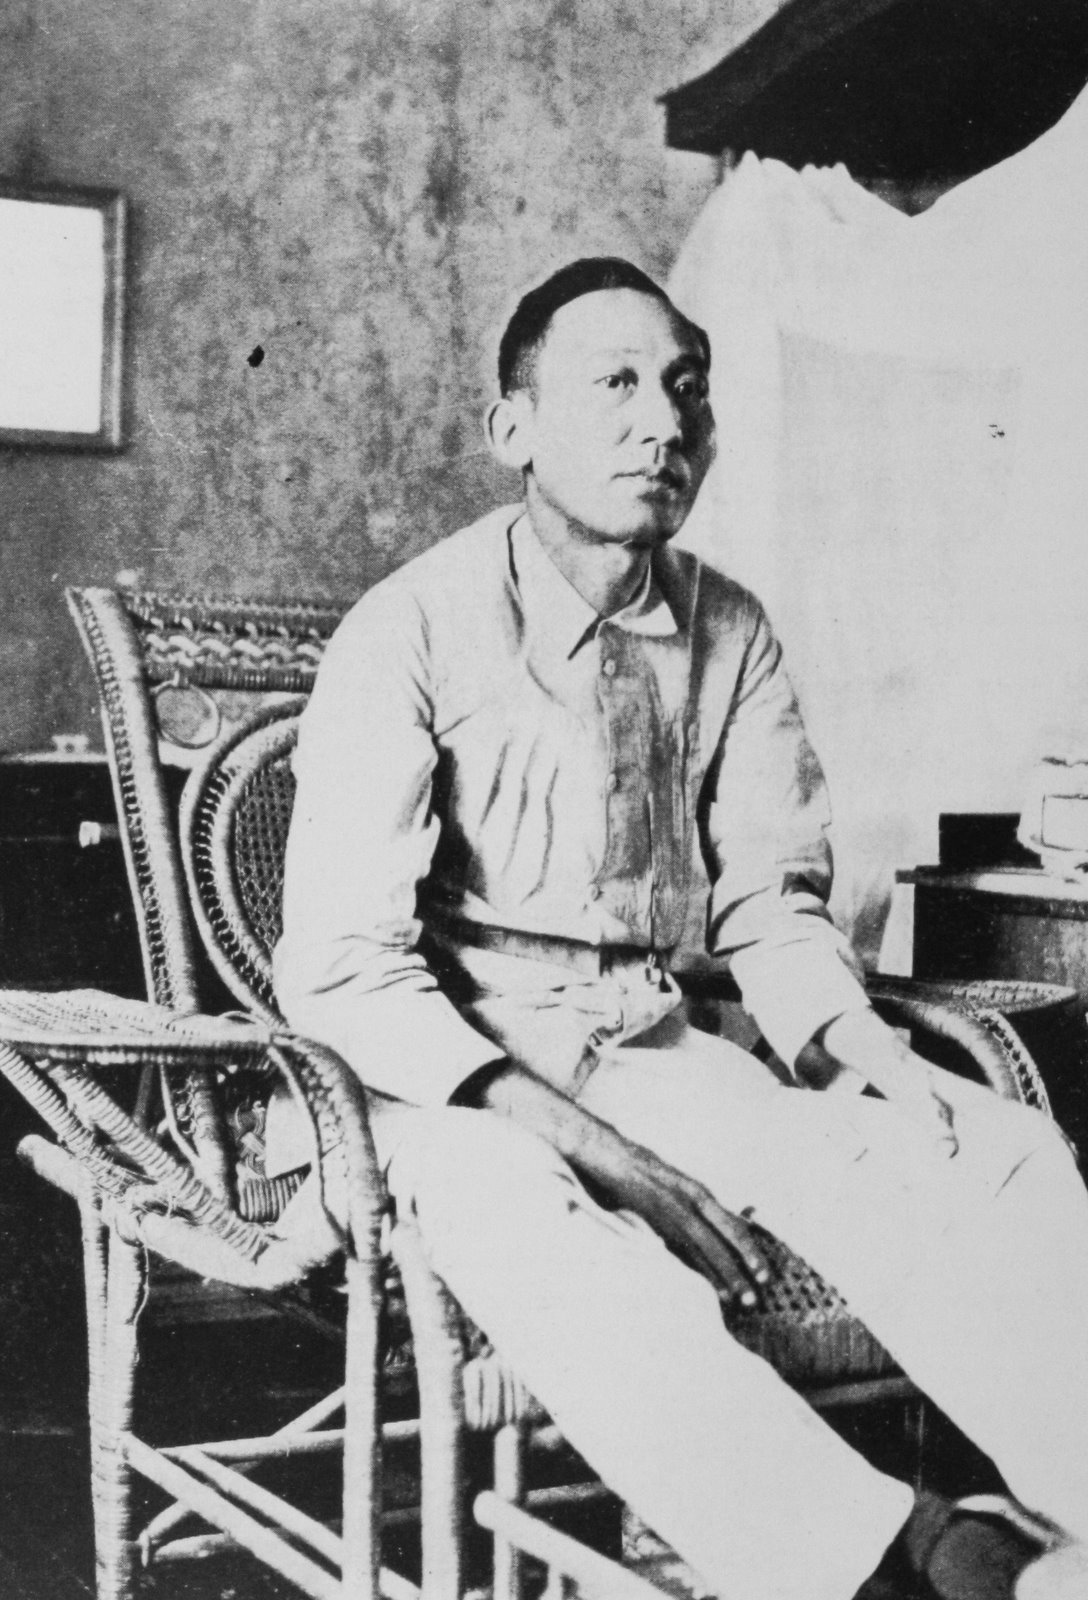 The deportation to Guam of Apolinario Mabini and other insurgent leaders